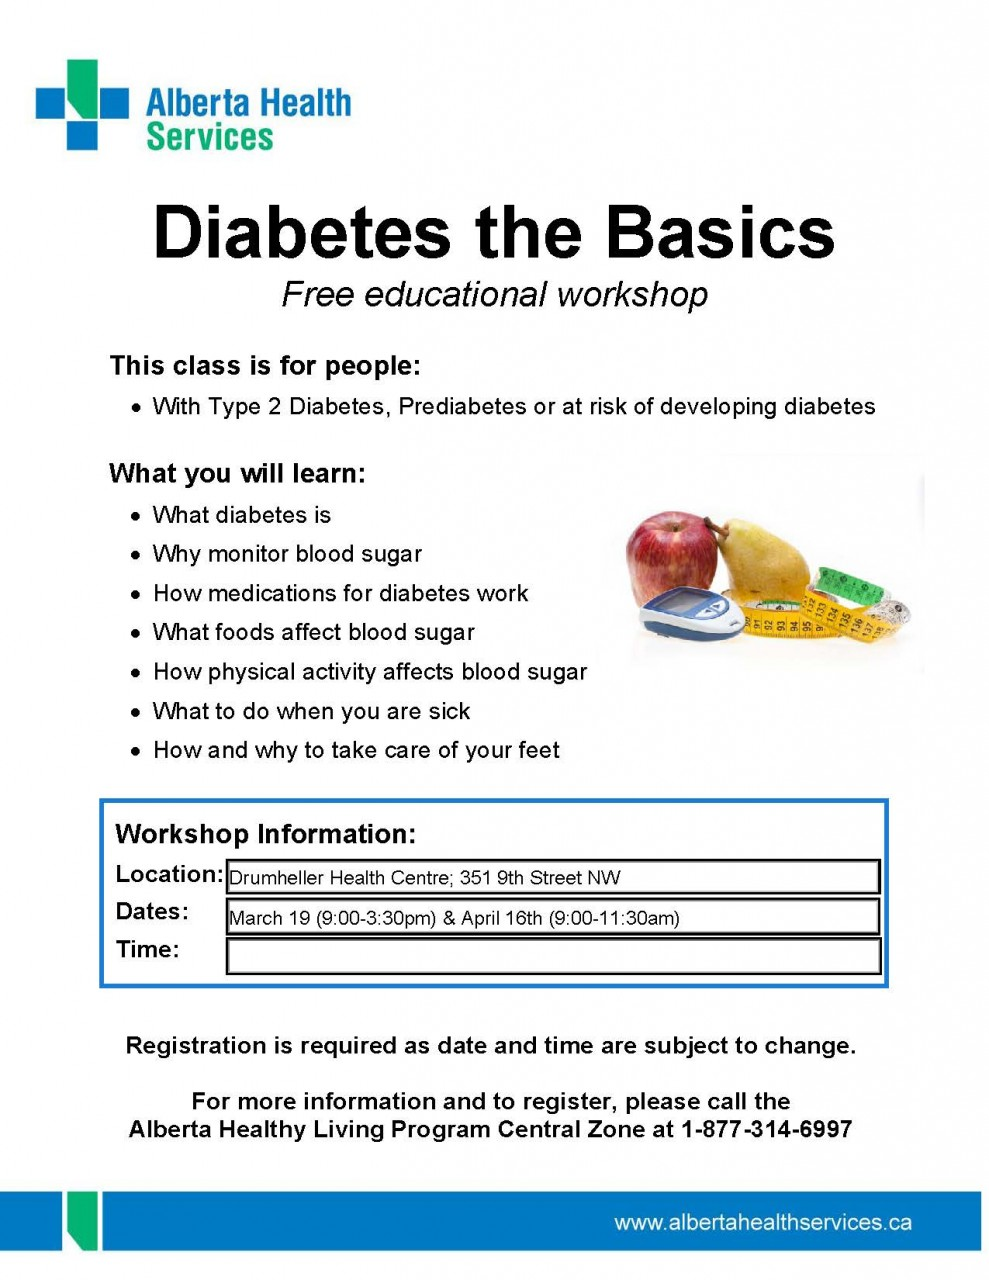 Diabetes-the-Basics---Drumheller-March-19--April-16-2018